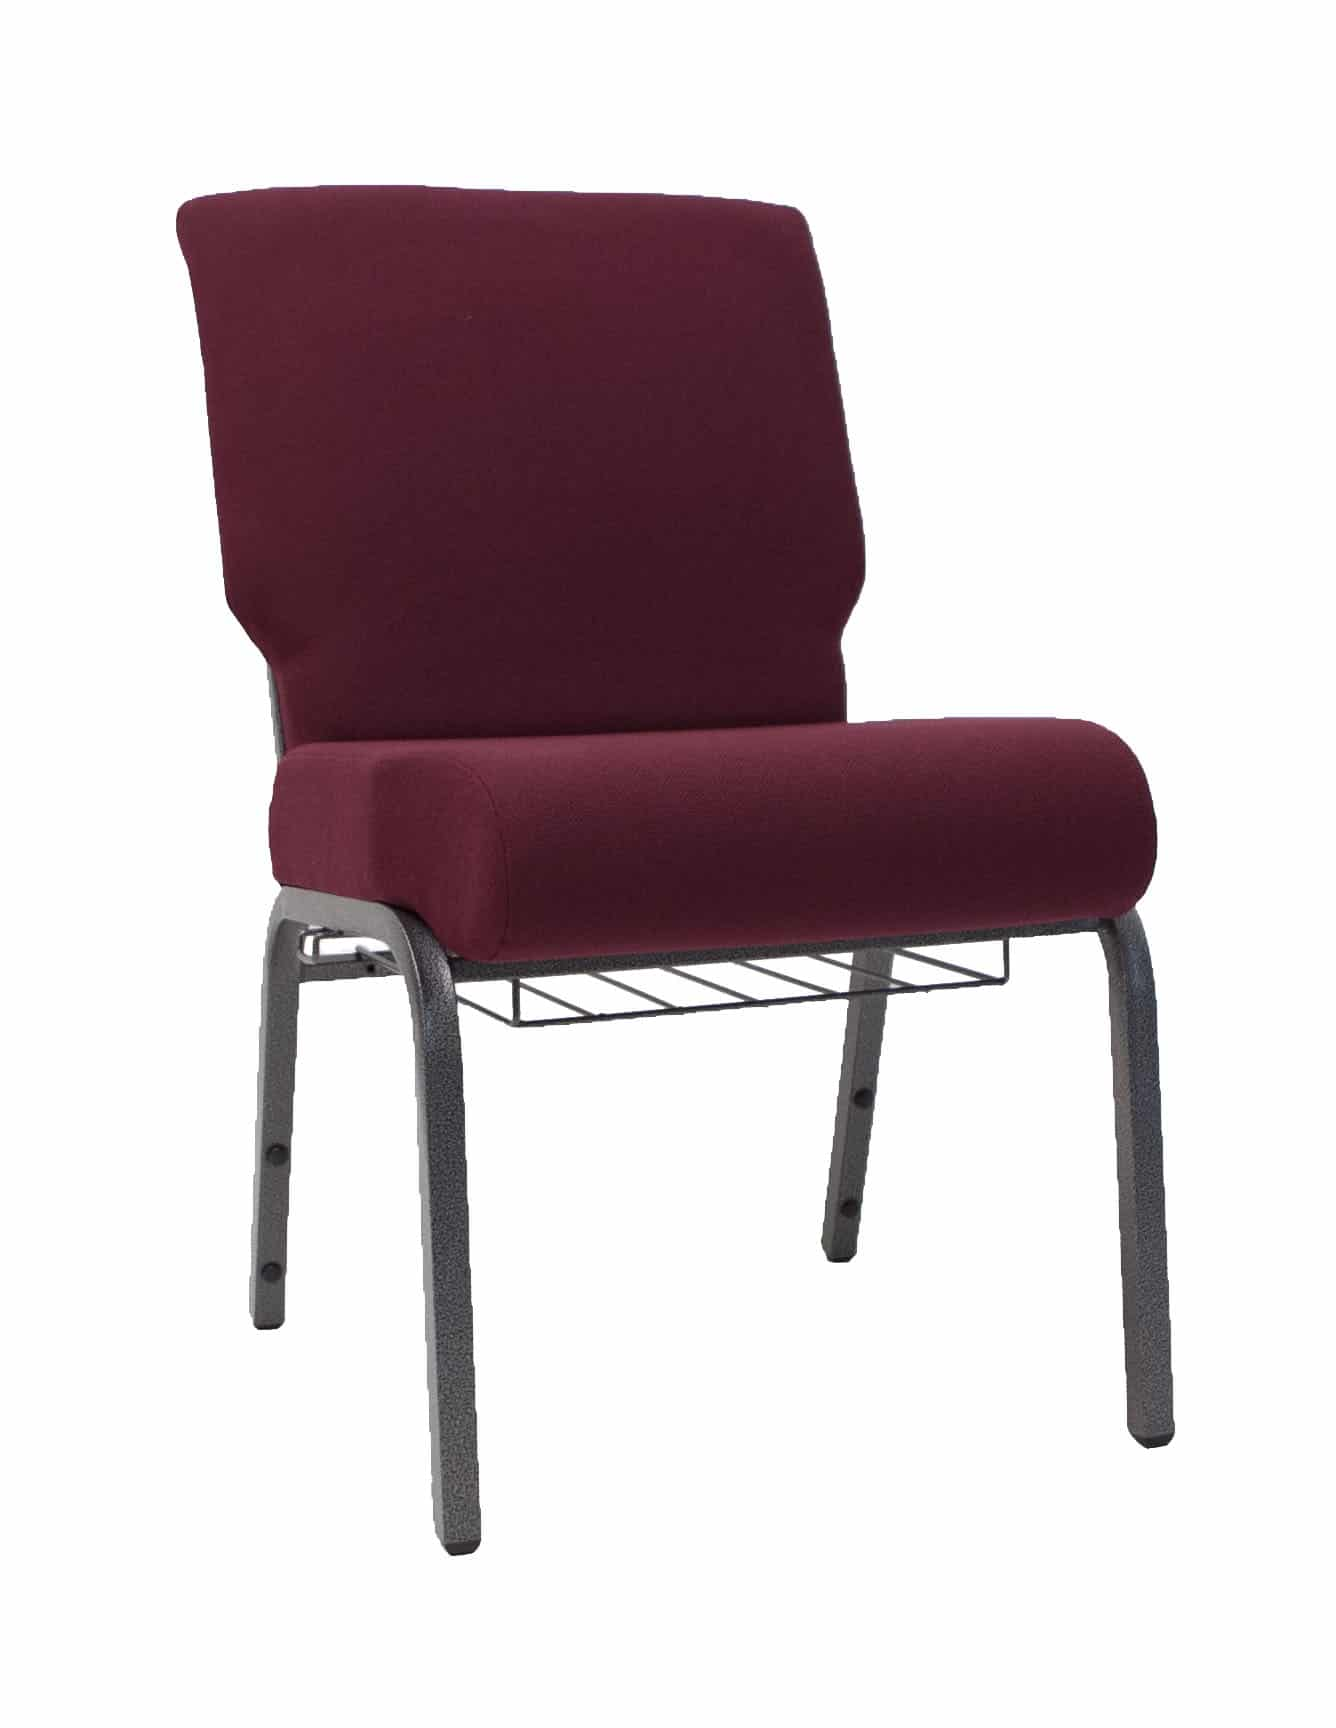 AMCC Maroon 20 Inch Padded Church Chair  The Furniture Family